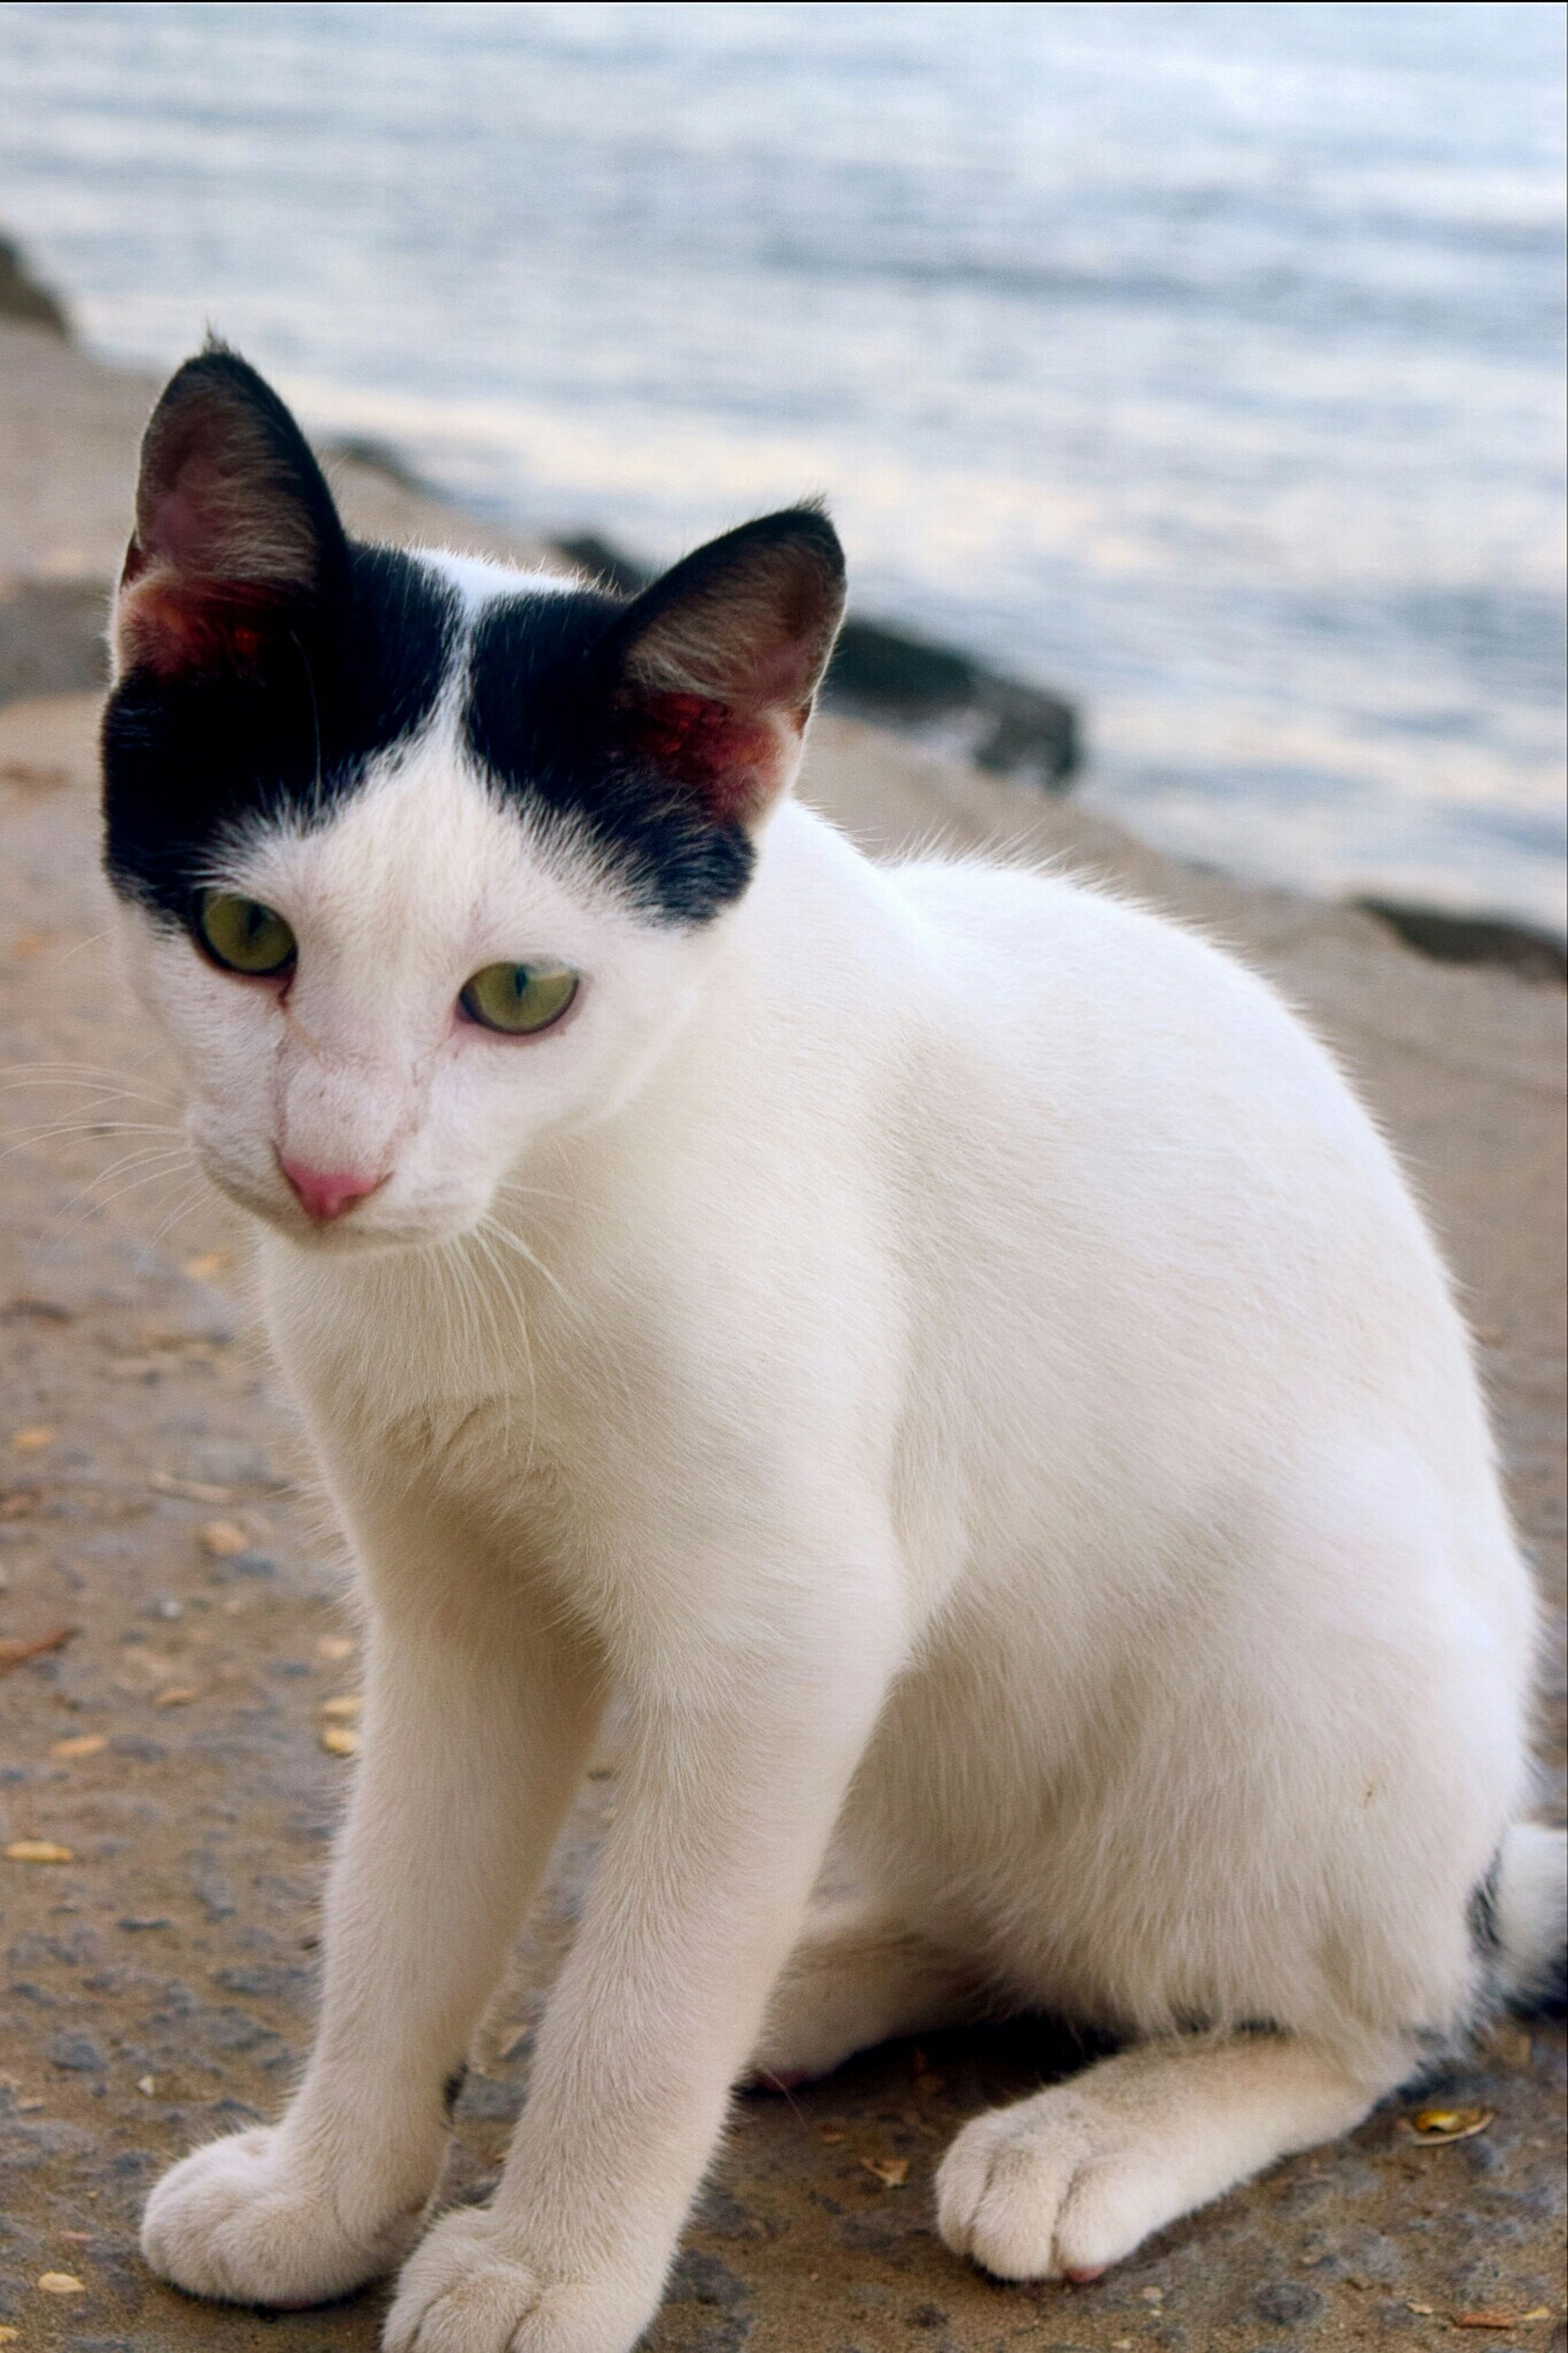 animal themes, one animal, mammal, focus on foreground, domestic animals, pets, close-up, domestic cat, cat, whisker, looking away, water, relaxation, white color, outdoors, feline, nature, two animals, day, sitting